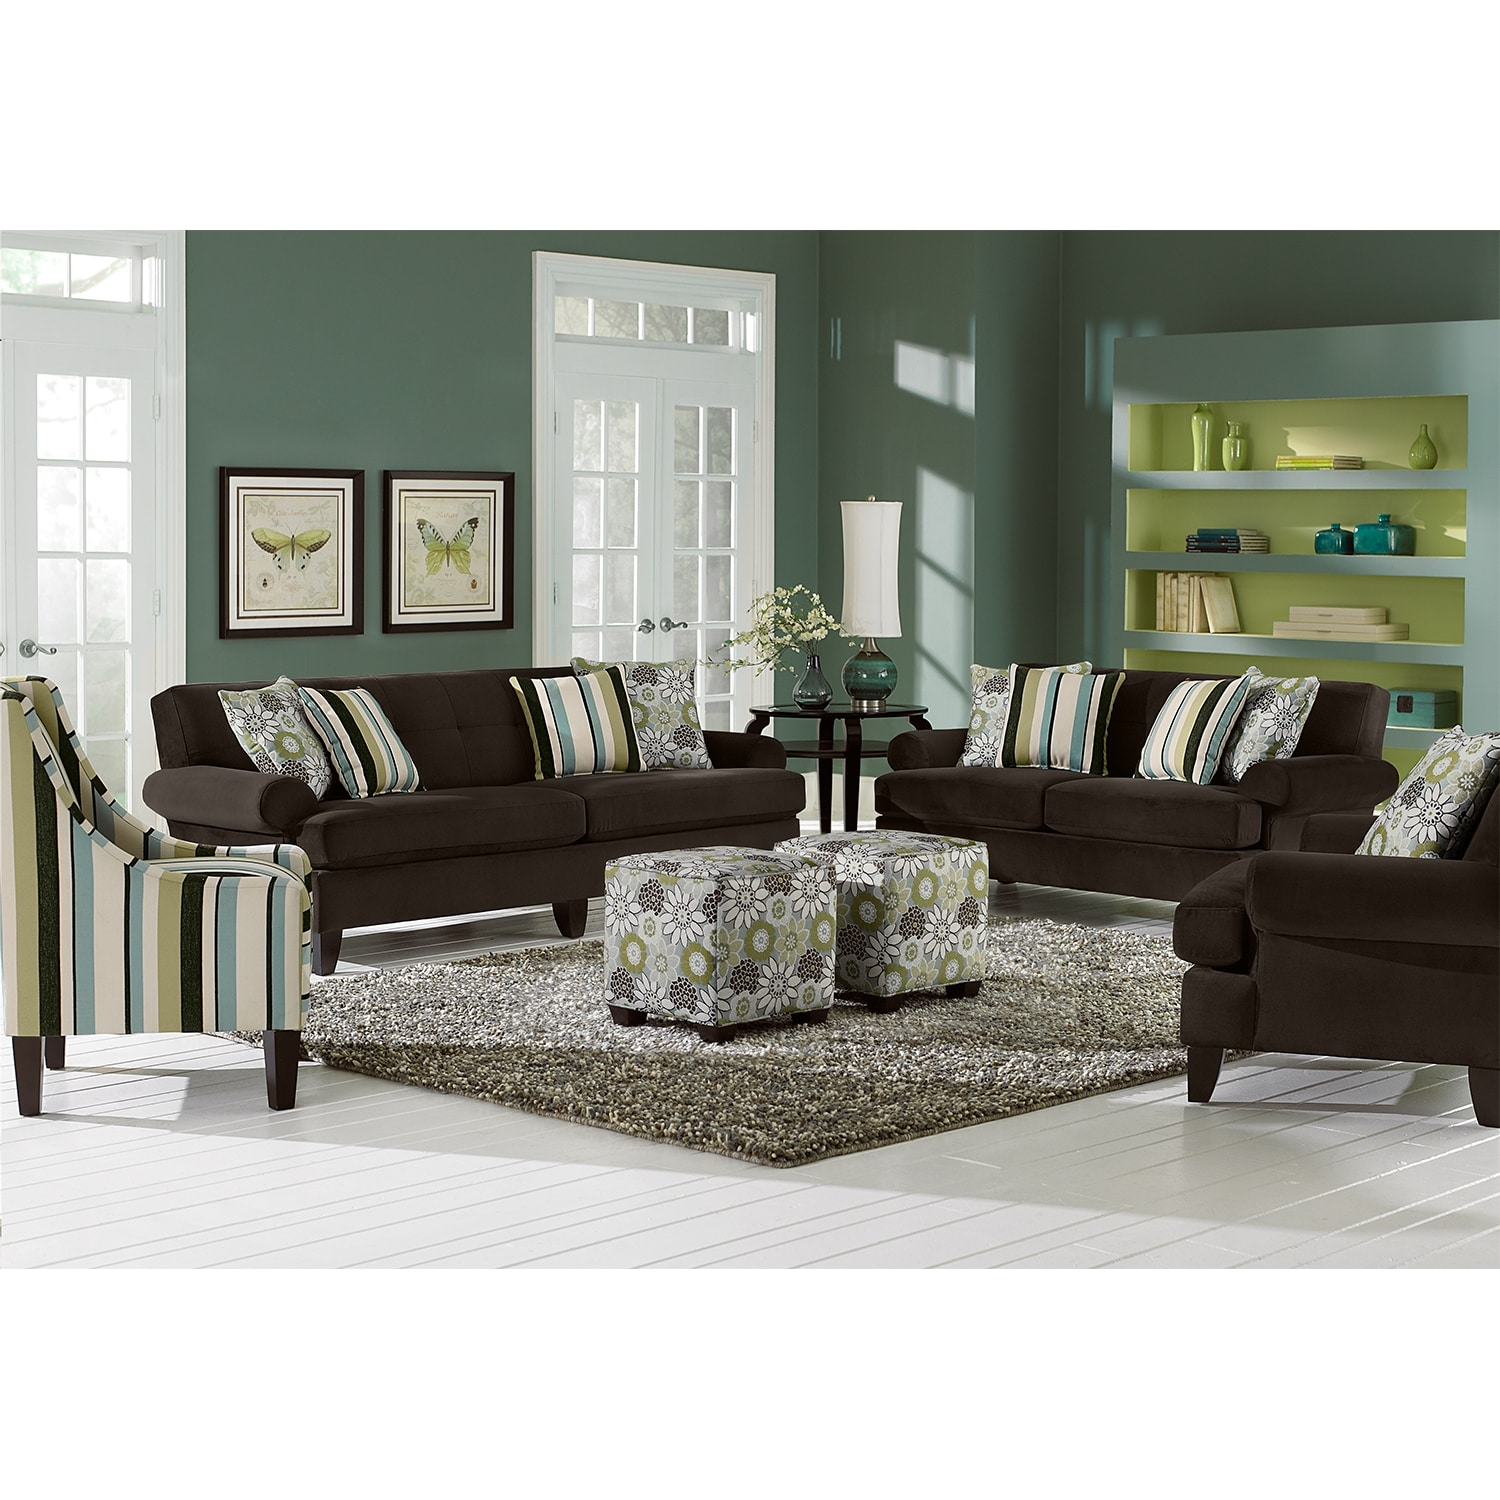 Living Room Furniture-Madison Sofa | 1500 x 1500 · 986 kB · jpeg